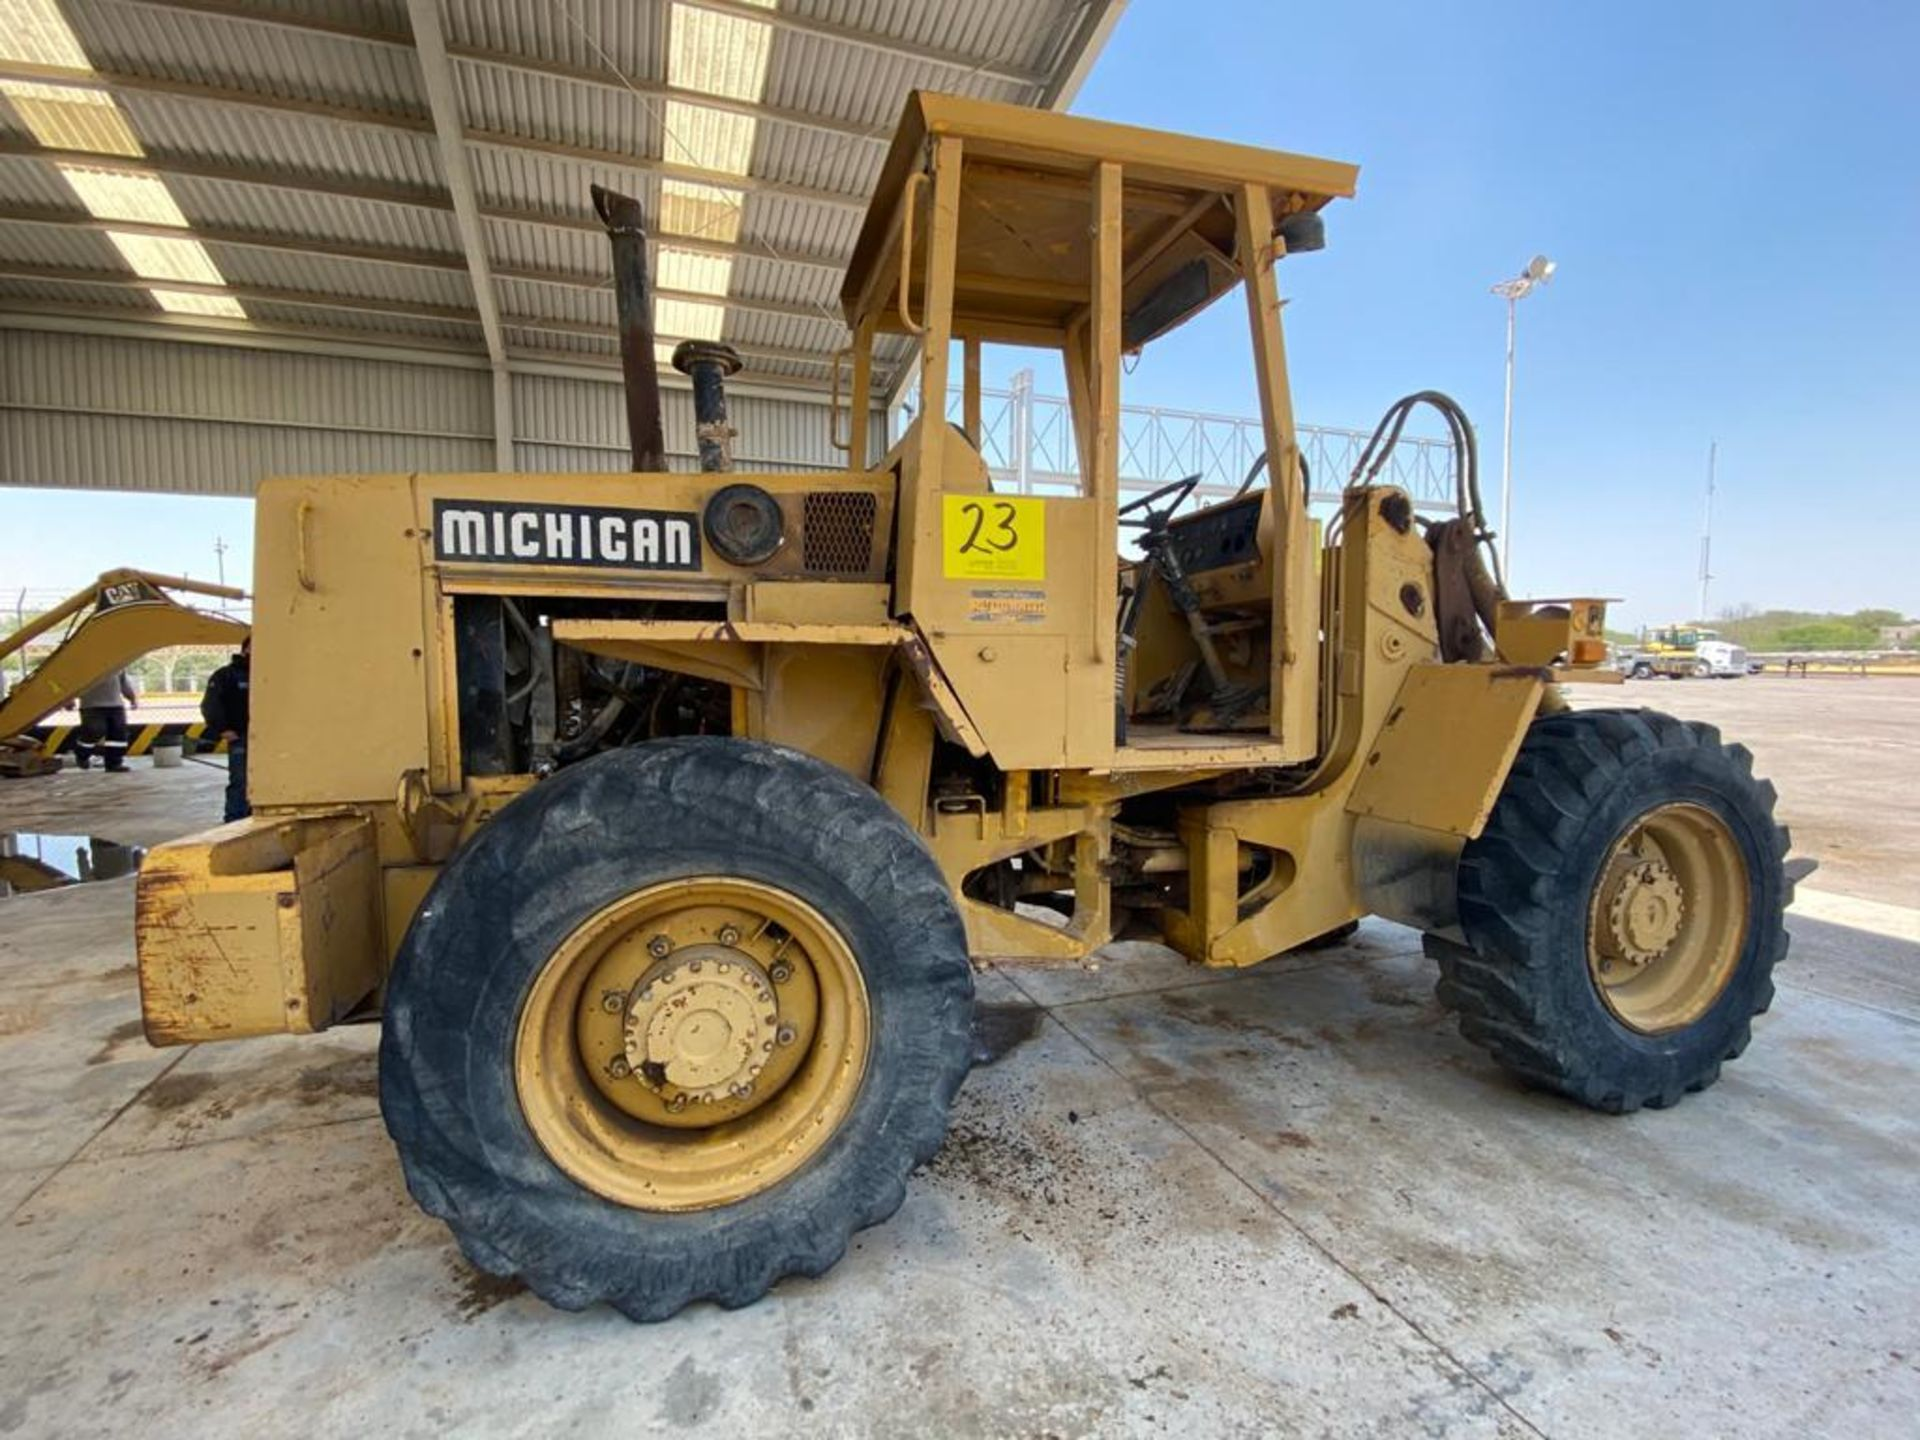 Volvo BM TYPE L 30 Michigan Front Loder, automatic transmission - Image 23 of 53